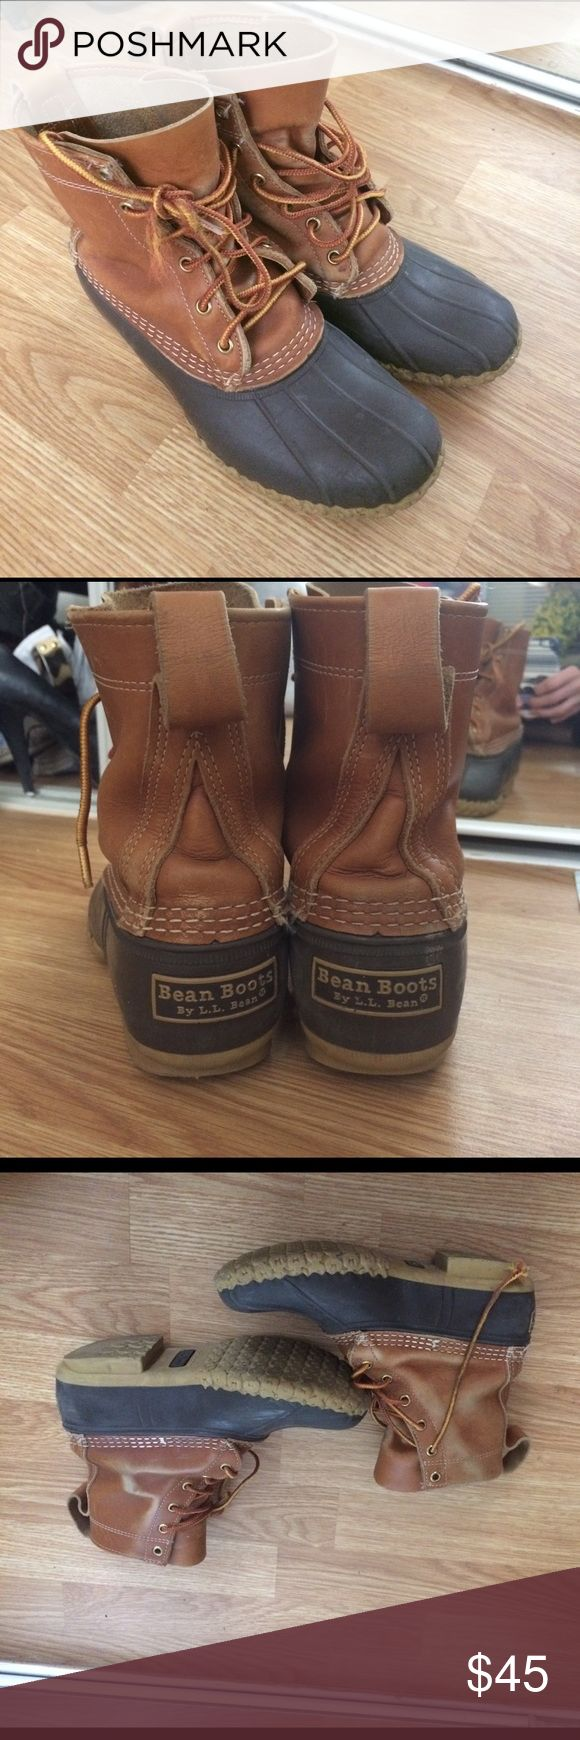 L.L. Bean Duck boots Authentic L.L. Bean women's duck boots. Run a bit big. But will fit if you're a size 7, best with thick socks. Great winter boots. A but if wear as shown in the photos but overall in excellent condition L.L. Bean Shoes Winter & Rain Boots